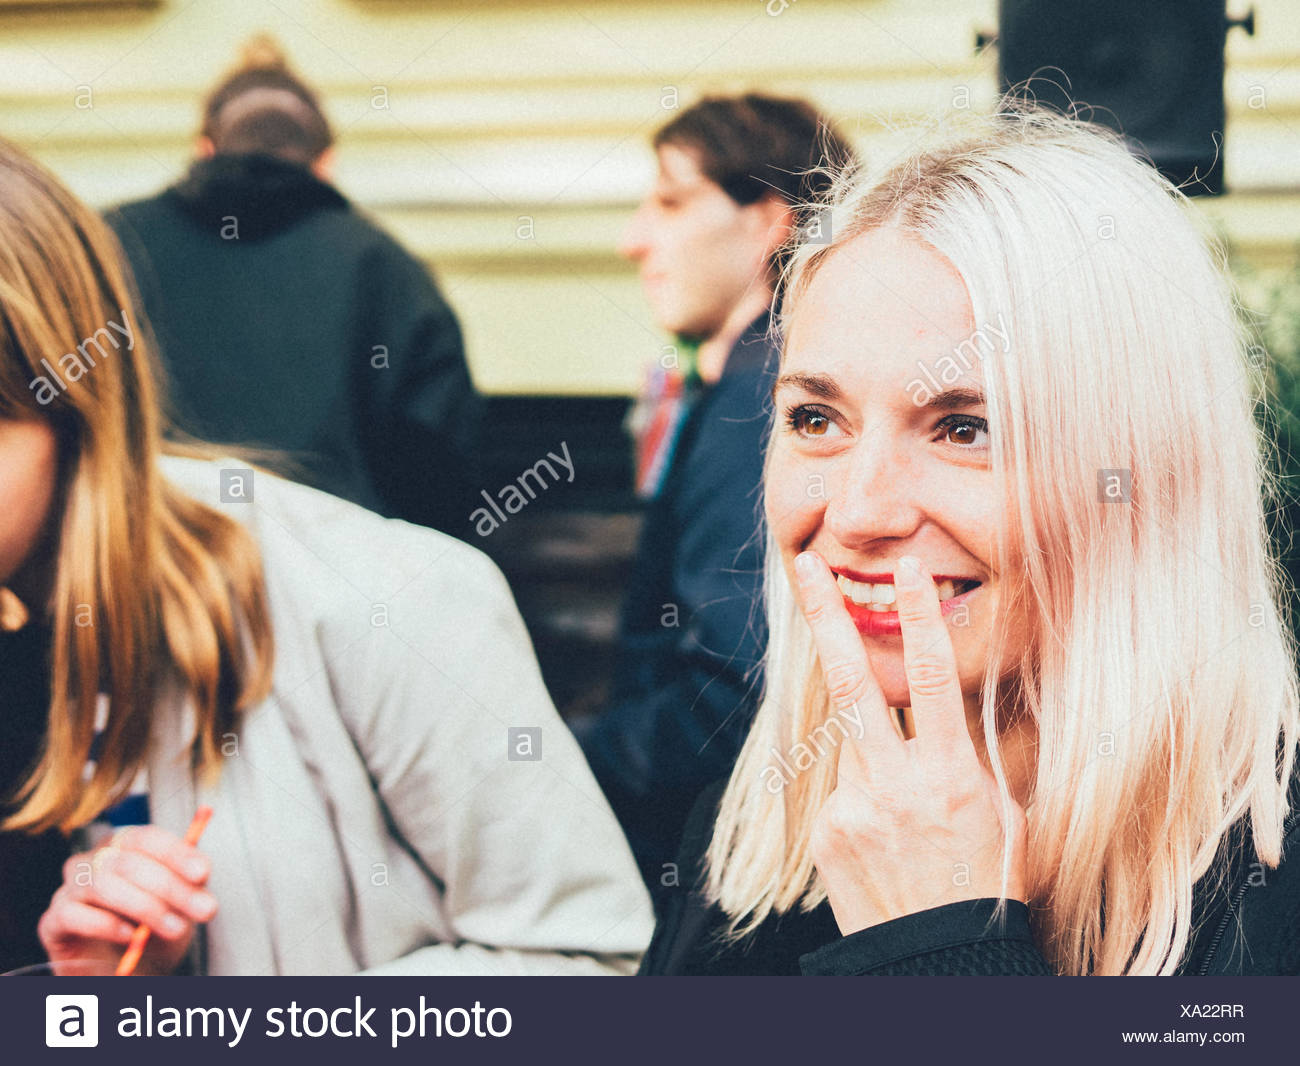 Beautiful Young Woman With Smoking Gesture - Stock Image